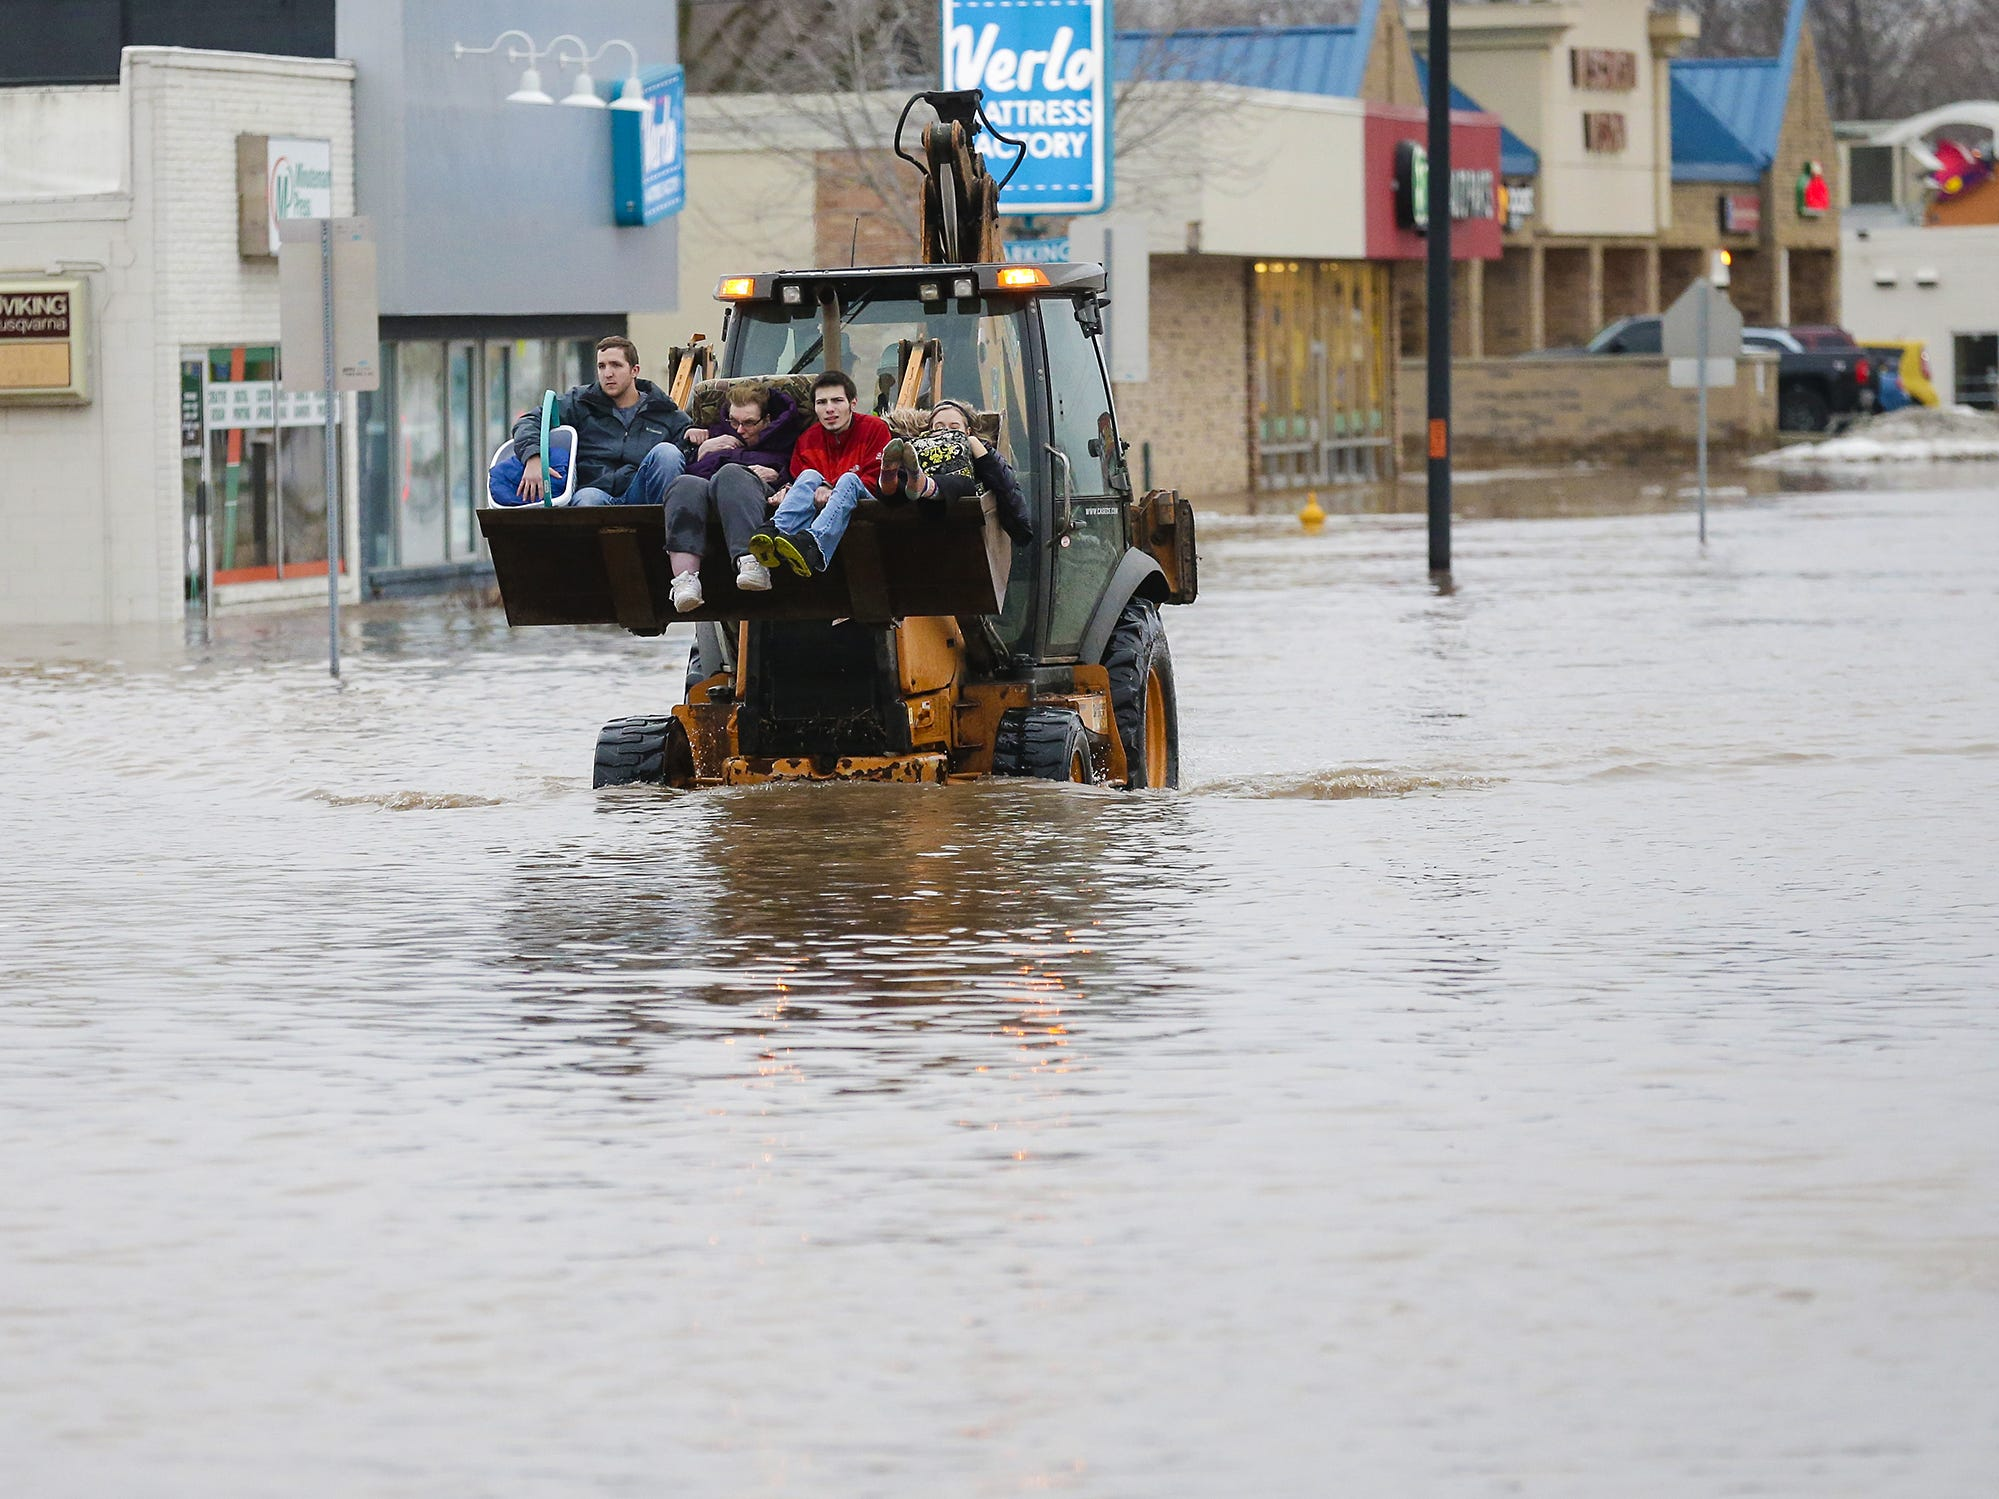 Four people are evacuated from a flooded area Thursday, March 14, 2019 on Johnson Street in Fond du Lac, Wis. Thursday, March 14, 2019. Ice jams on the east branch of the Fond du Lac River and heavy rain caused widespread flooding problems in the city. Doug Raflik/USA TODAY NETWORK-Wisconsin